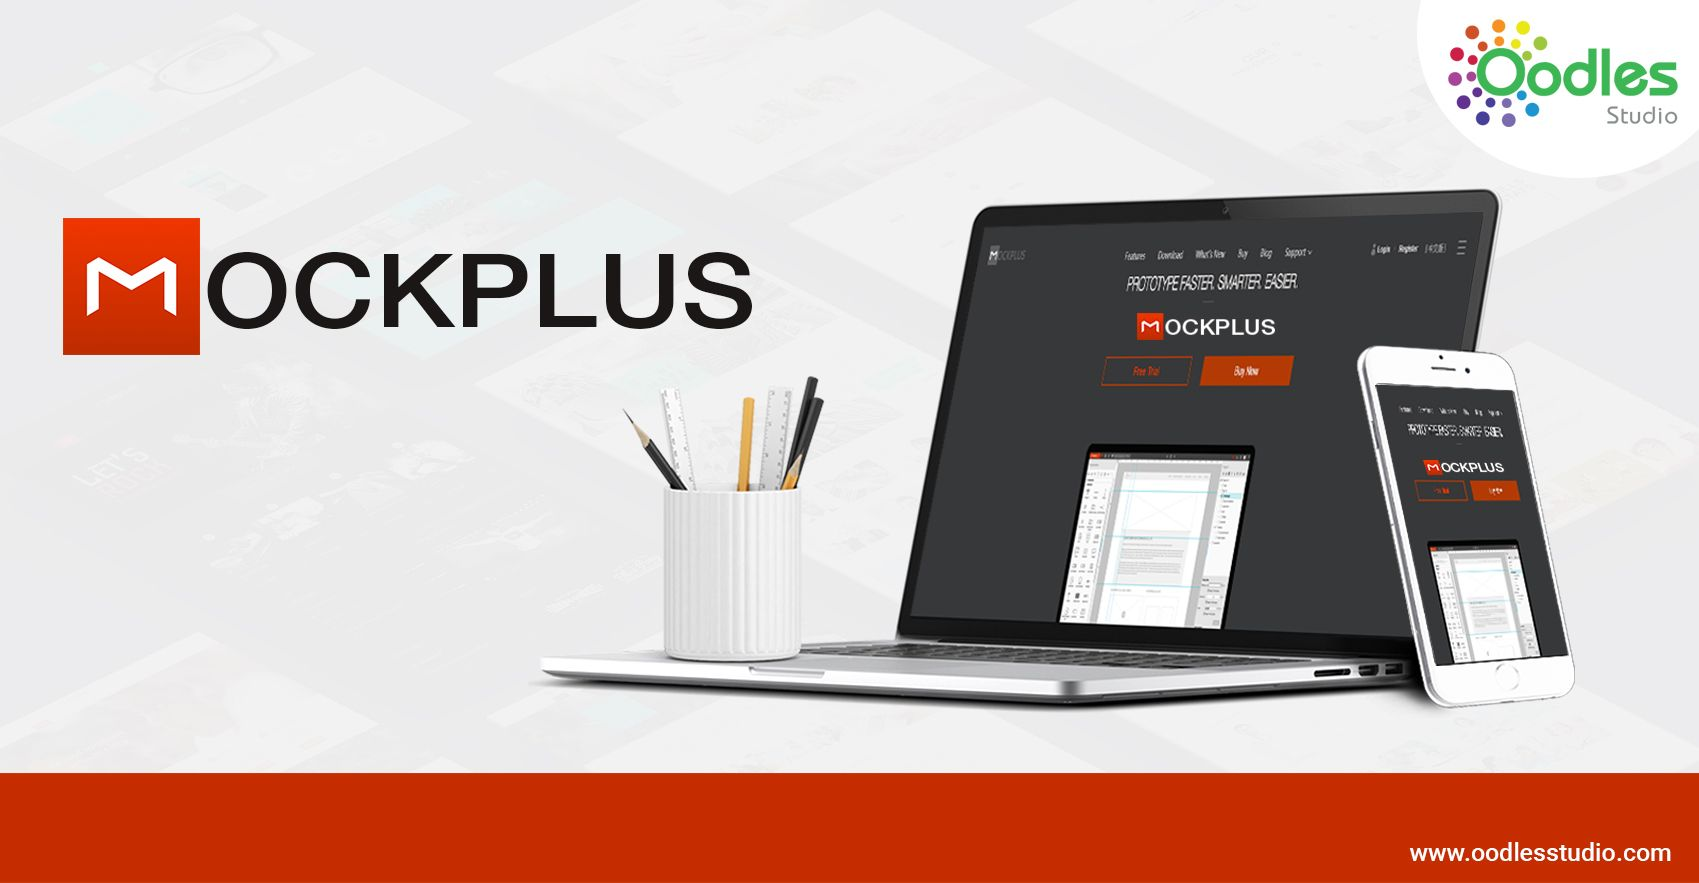 Mockplus 3.5.1.0 Crack Plus Serial Key latest (2020)